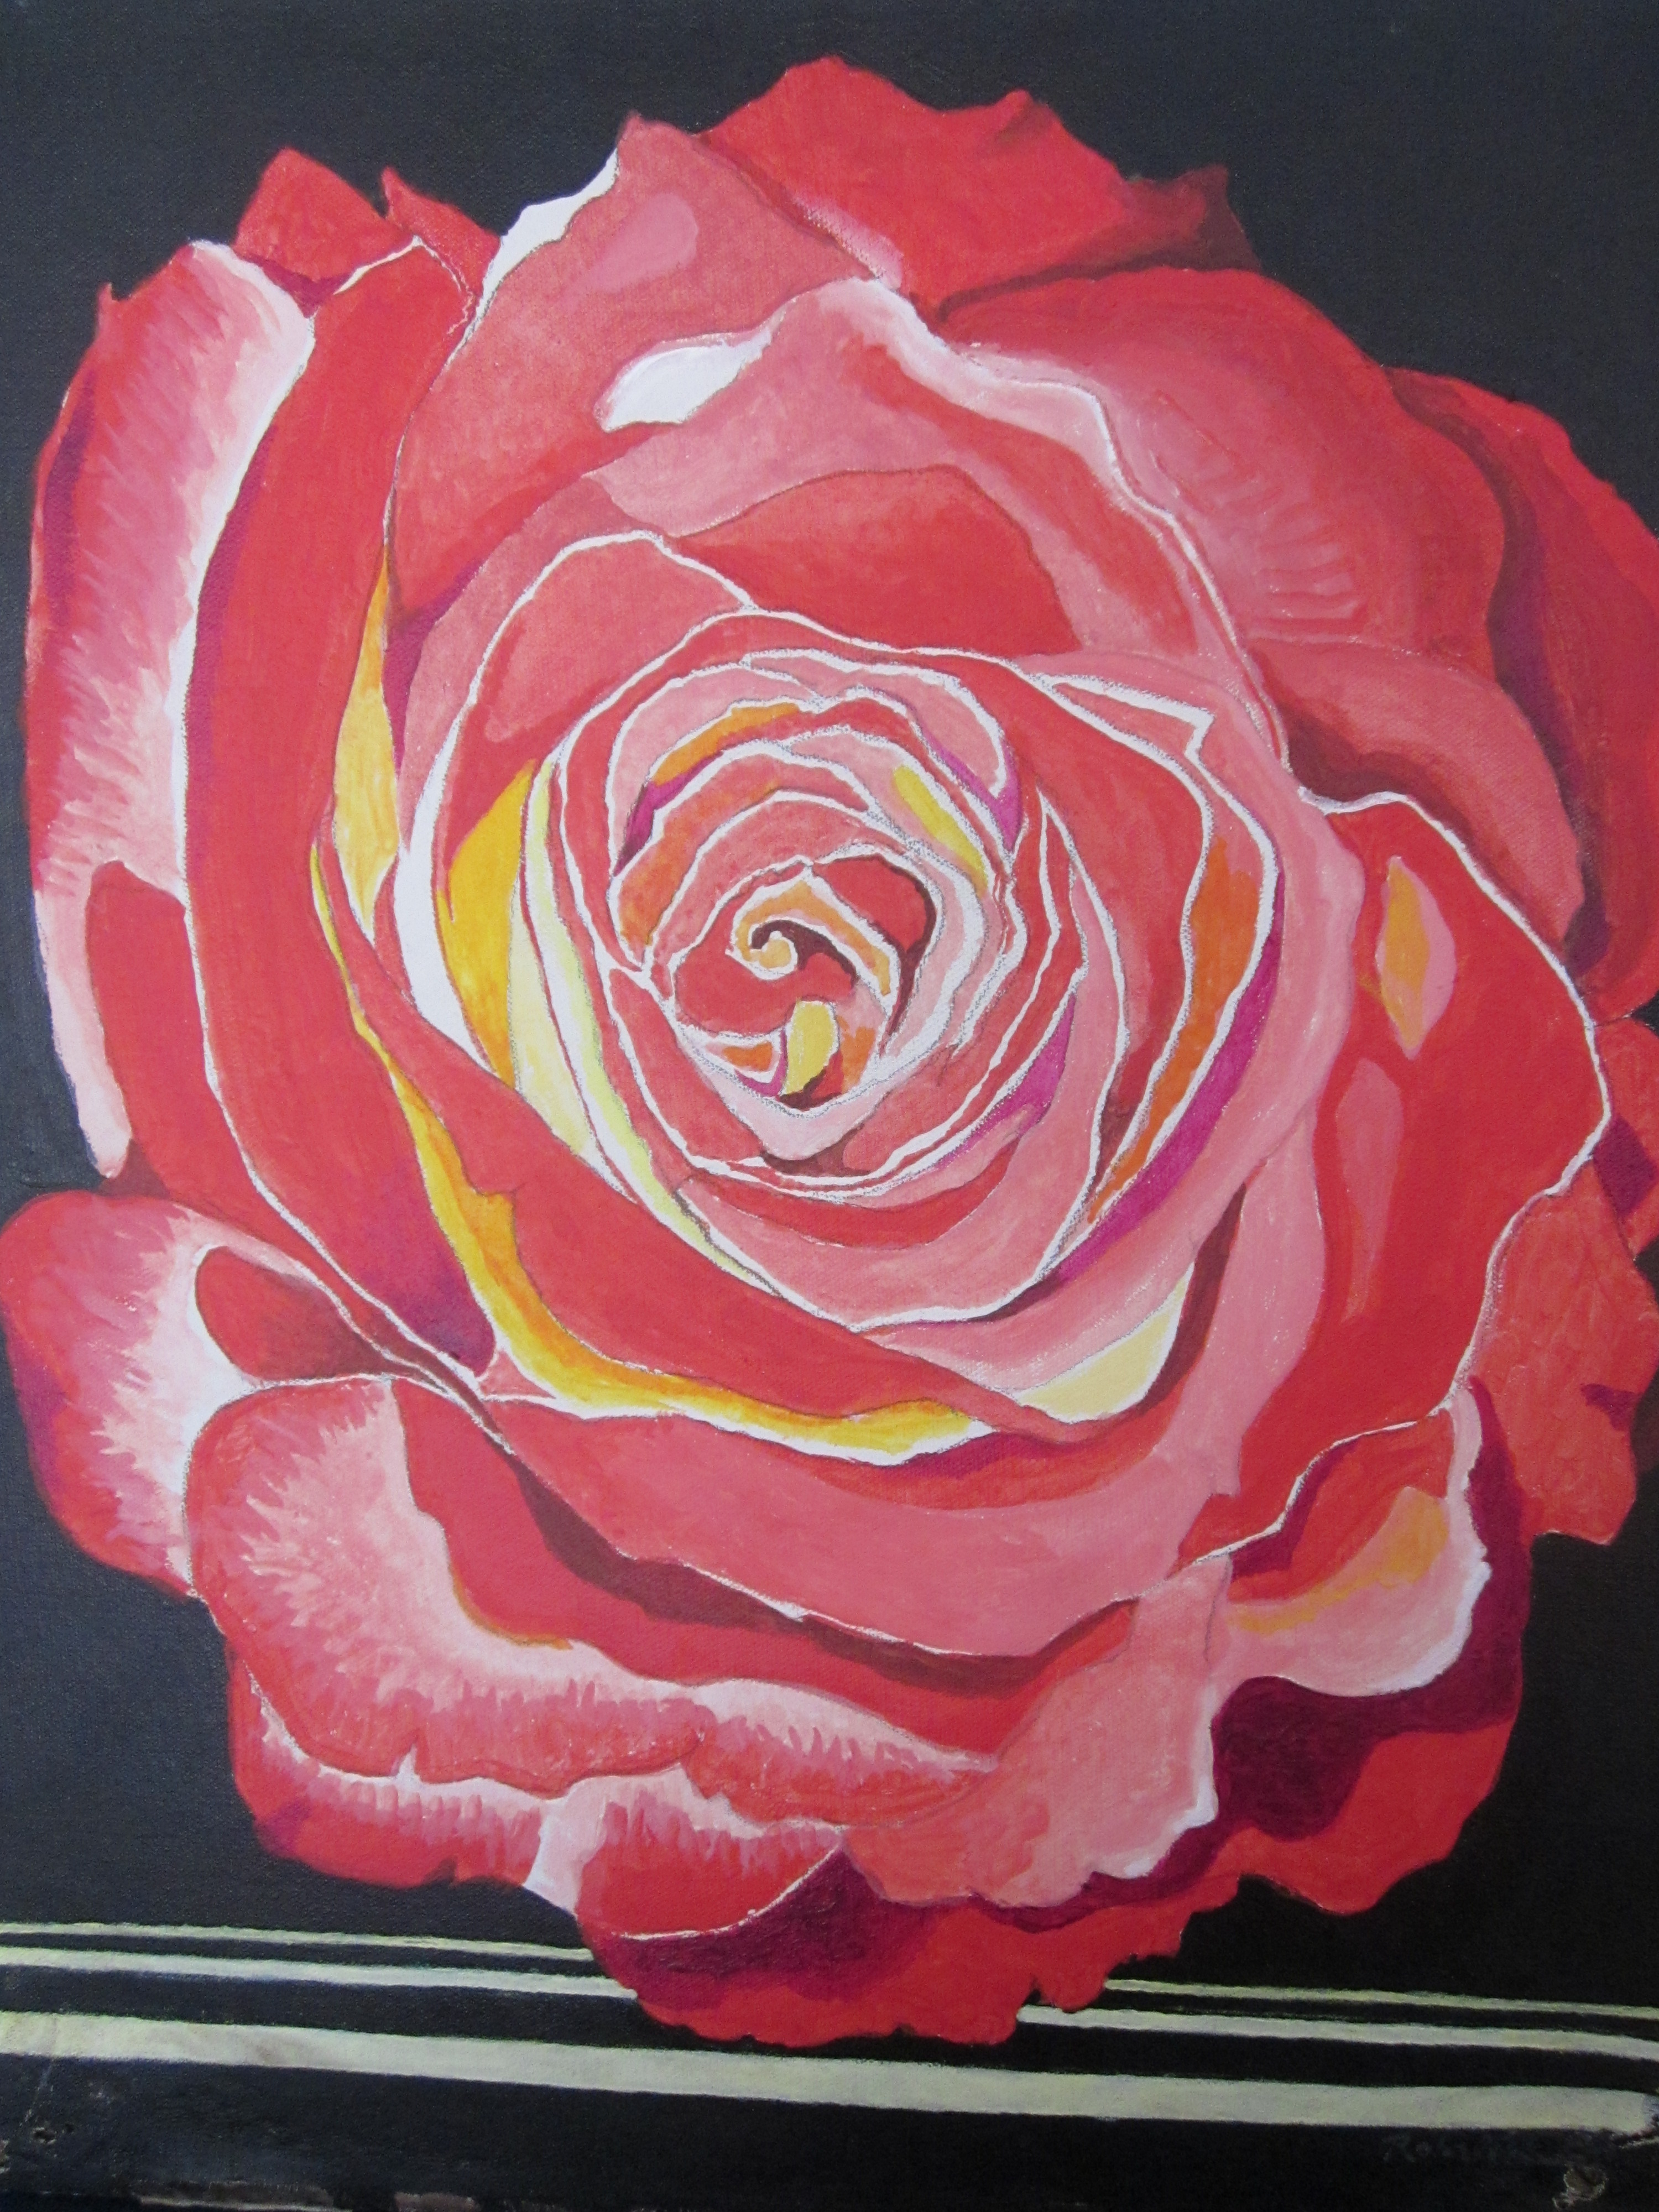 213 untitled (Red Rose), 16- x 20-, acrylics on canvas (1).JPG